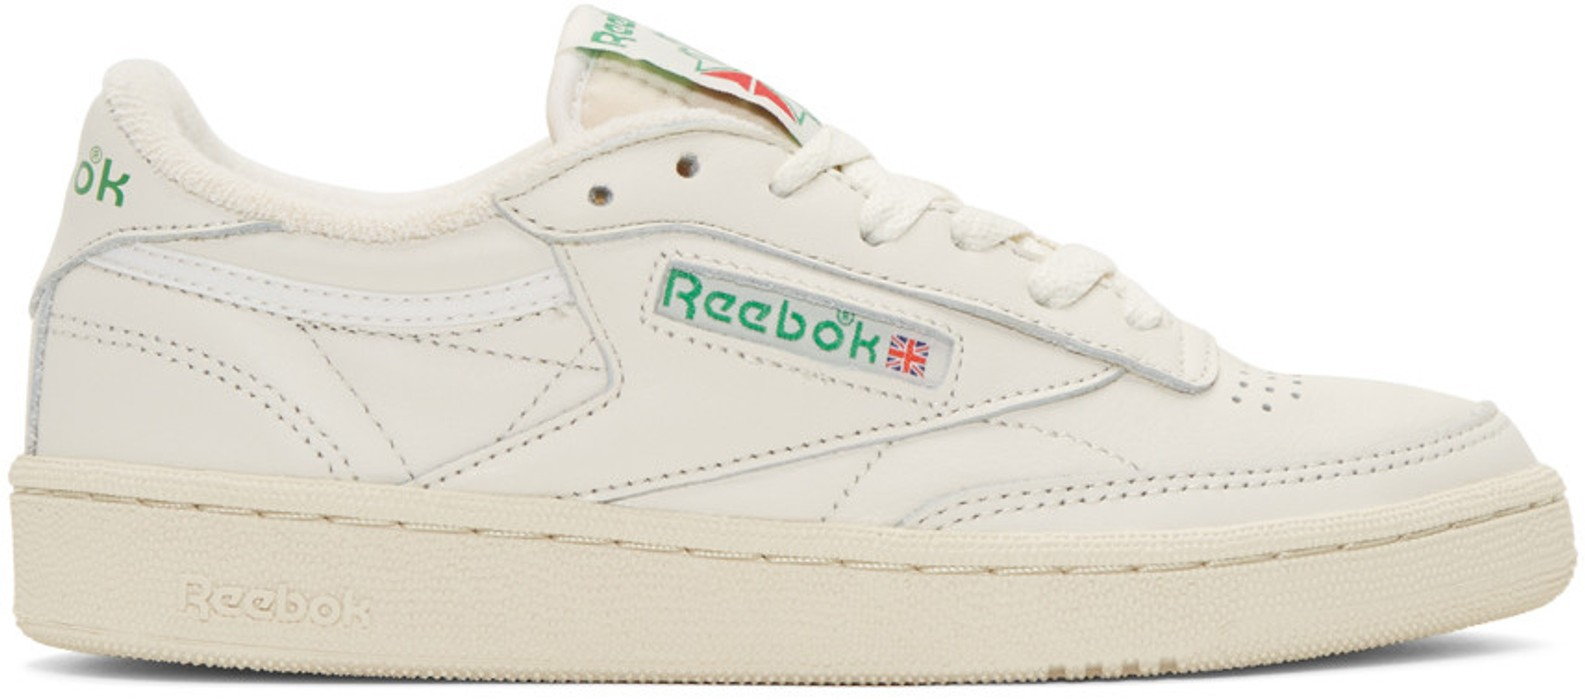 3edcc45d75b9 Reebok Club C 85 Vintage Size 9 - Low-Top Sneakers for Sale - Grailed